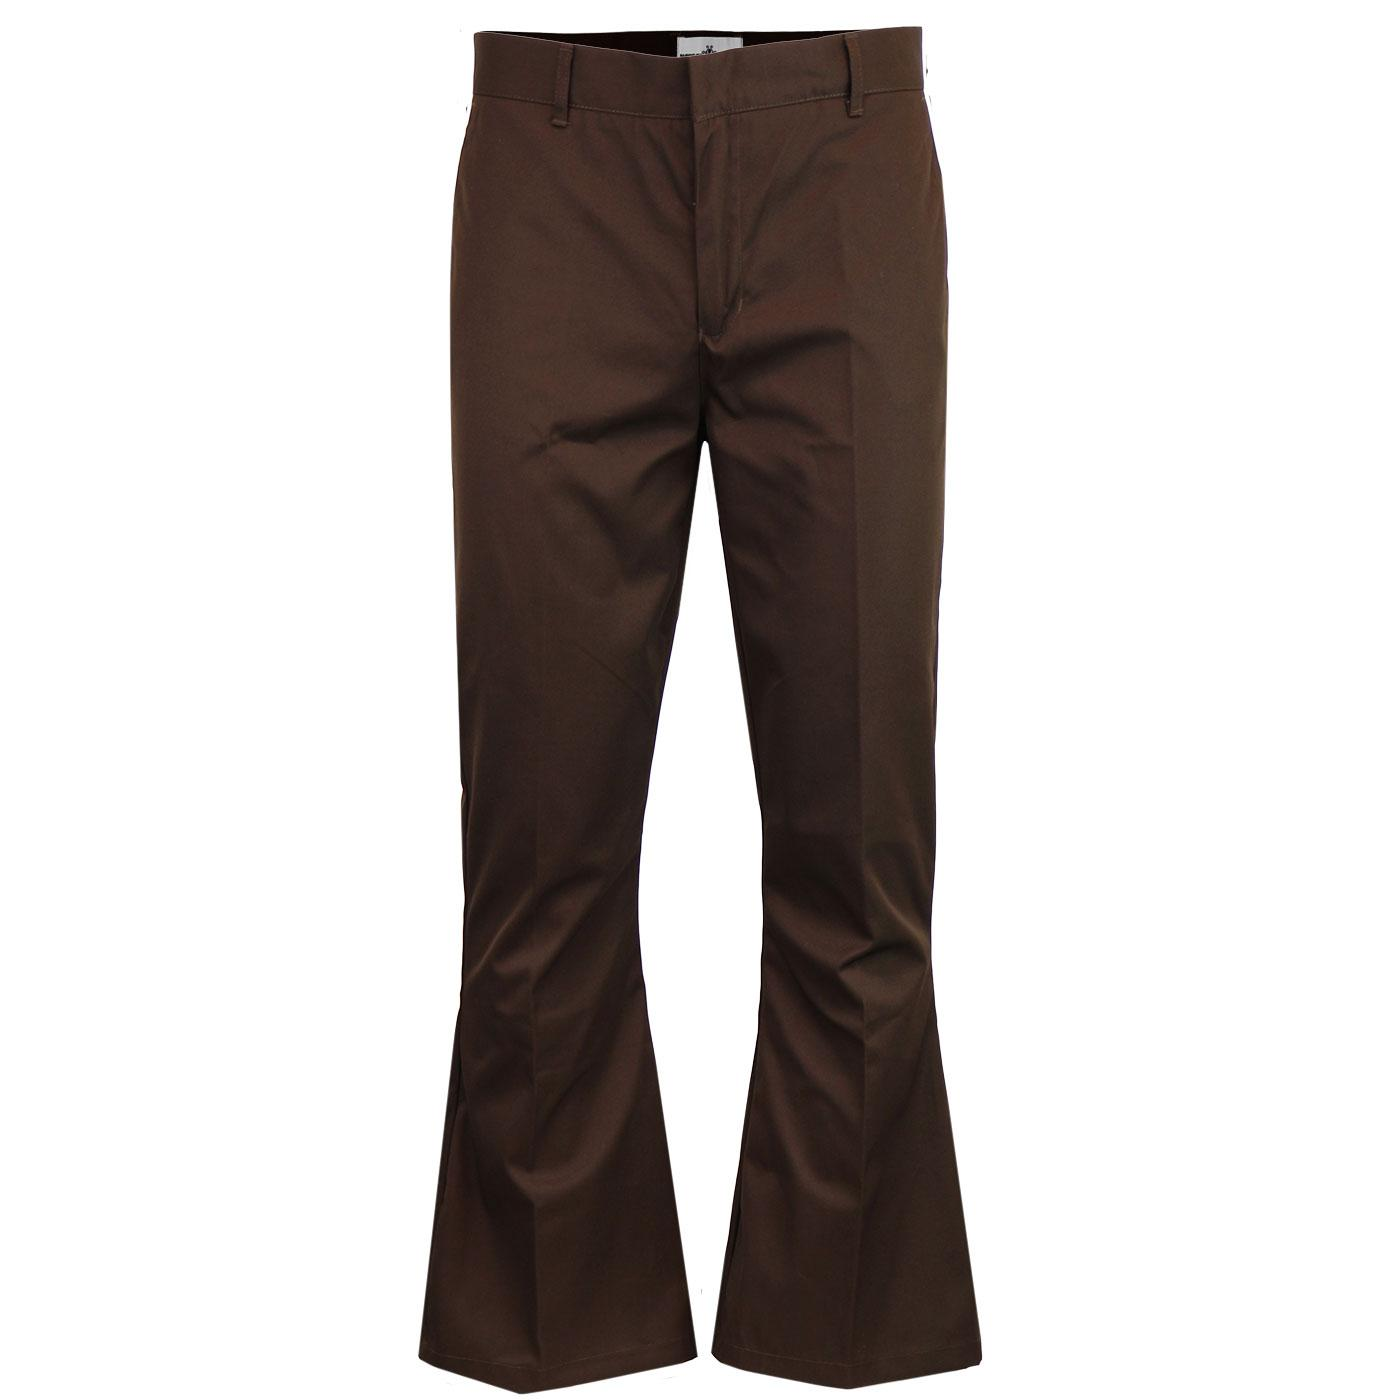 Bolan MADCAP ENGLAND Smart Bellbottom Flares BROWN